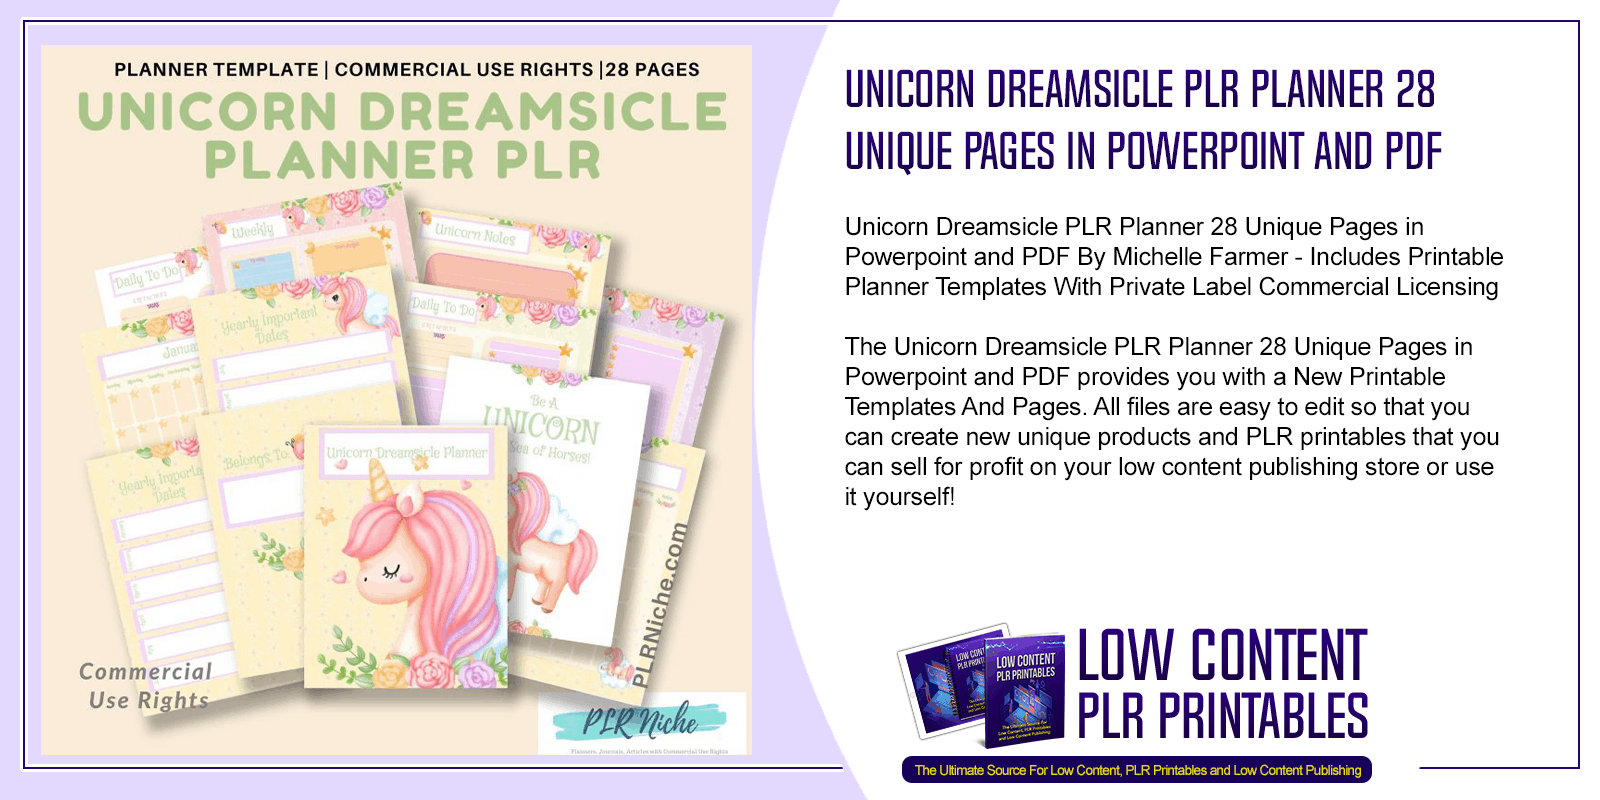 Unicorn Dreamsicle PLR Planner 28 Unique Pages in Powerpoint and PDF